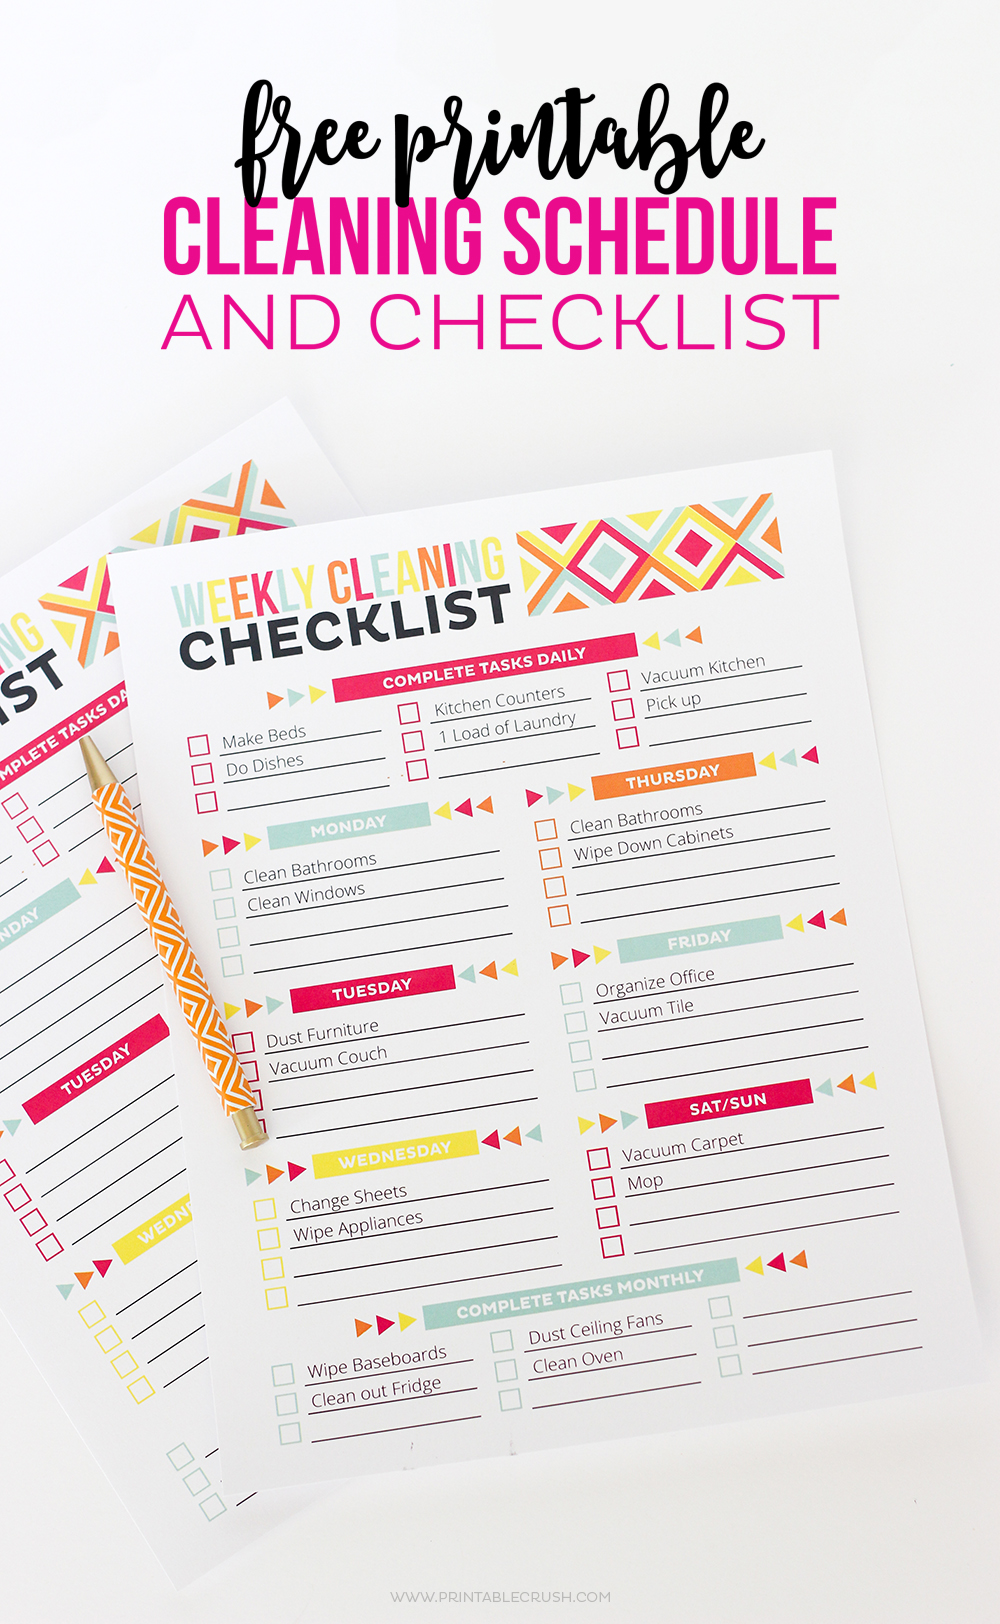 picture about Printable Household Chore List identified as Cost-free Printable Cleansing Plan and List - Printable Crush